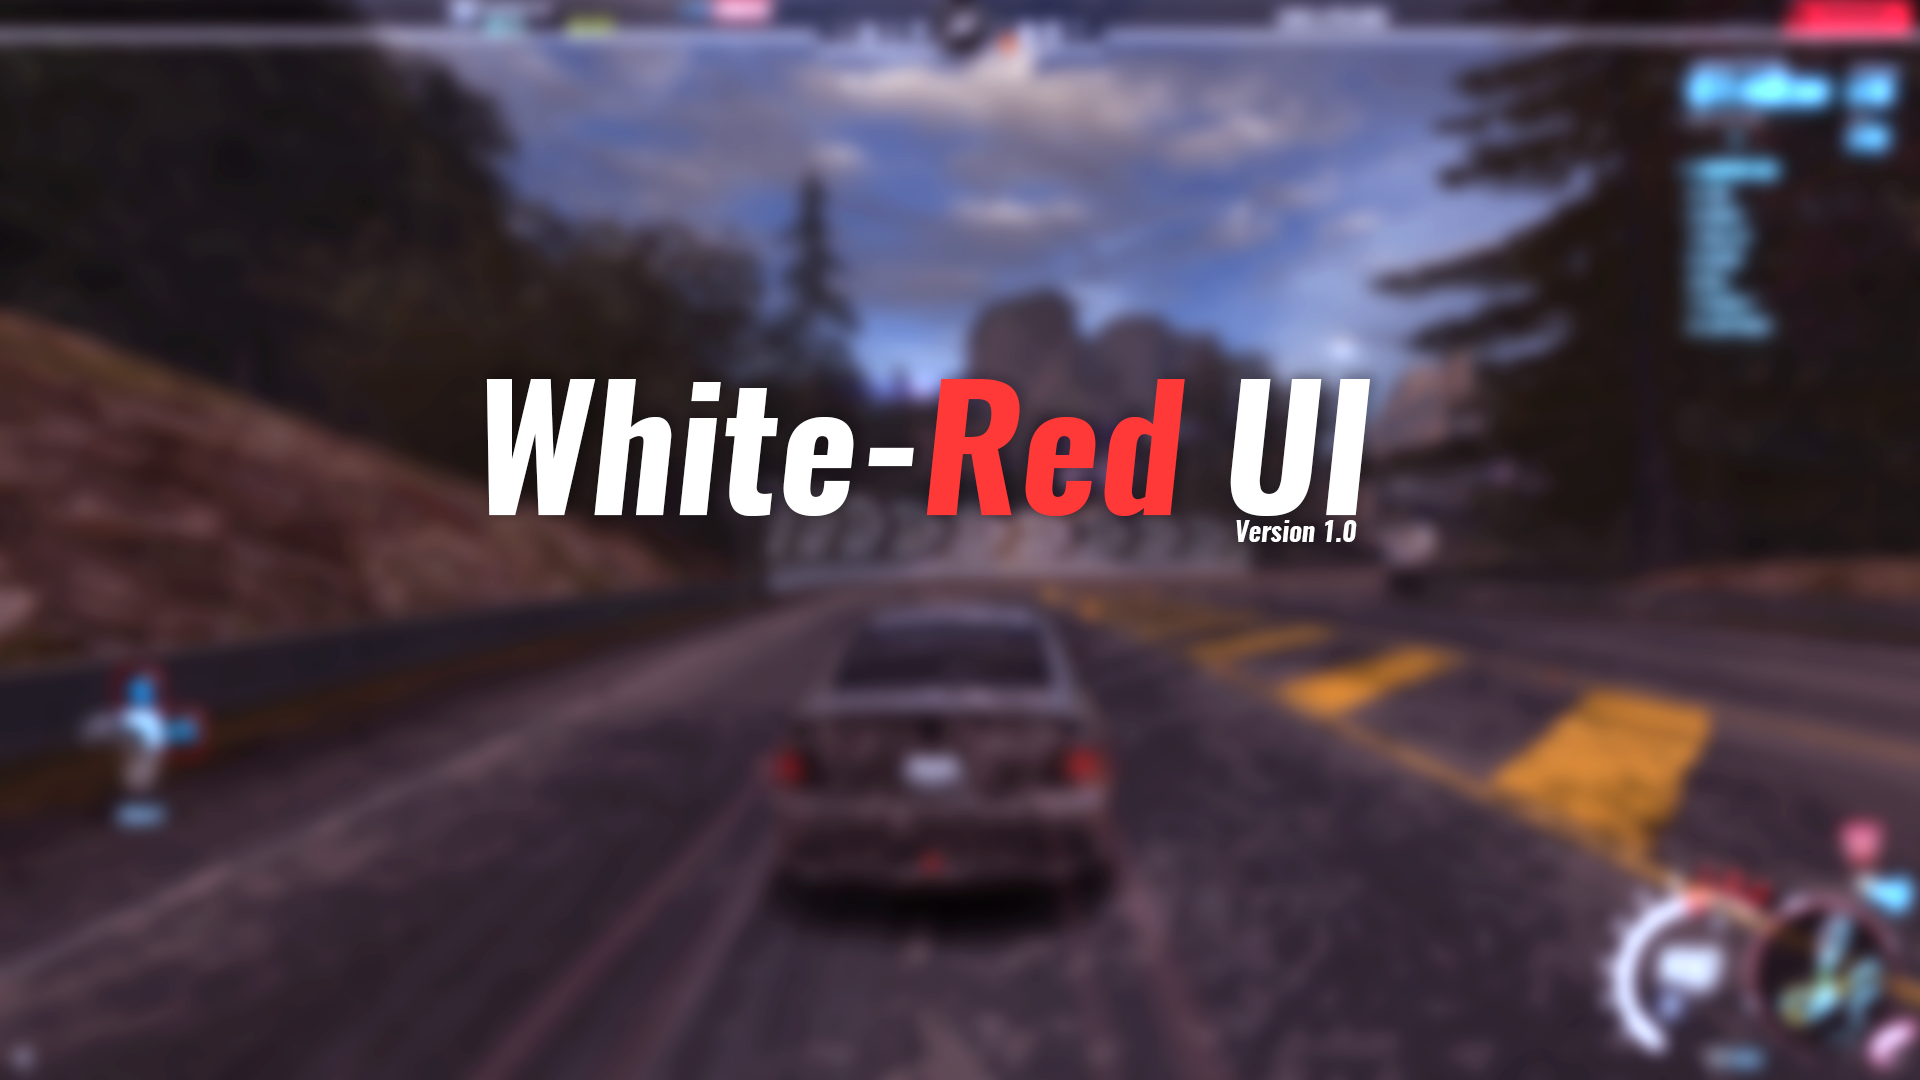 NFSMods - White-Red UI for Need for Speed World